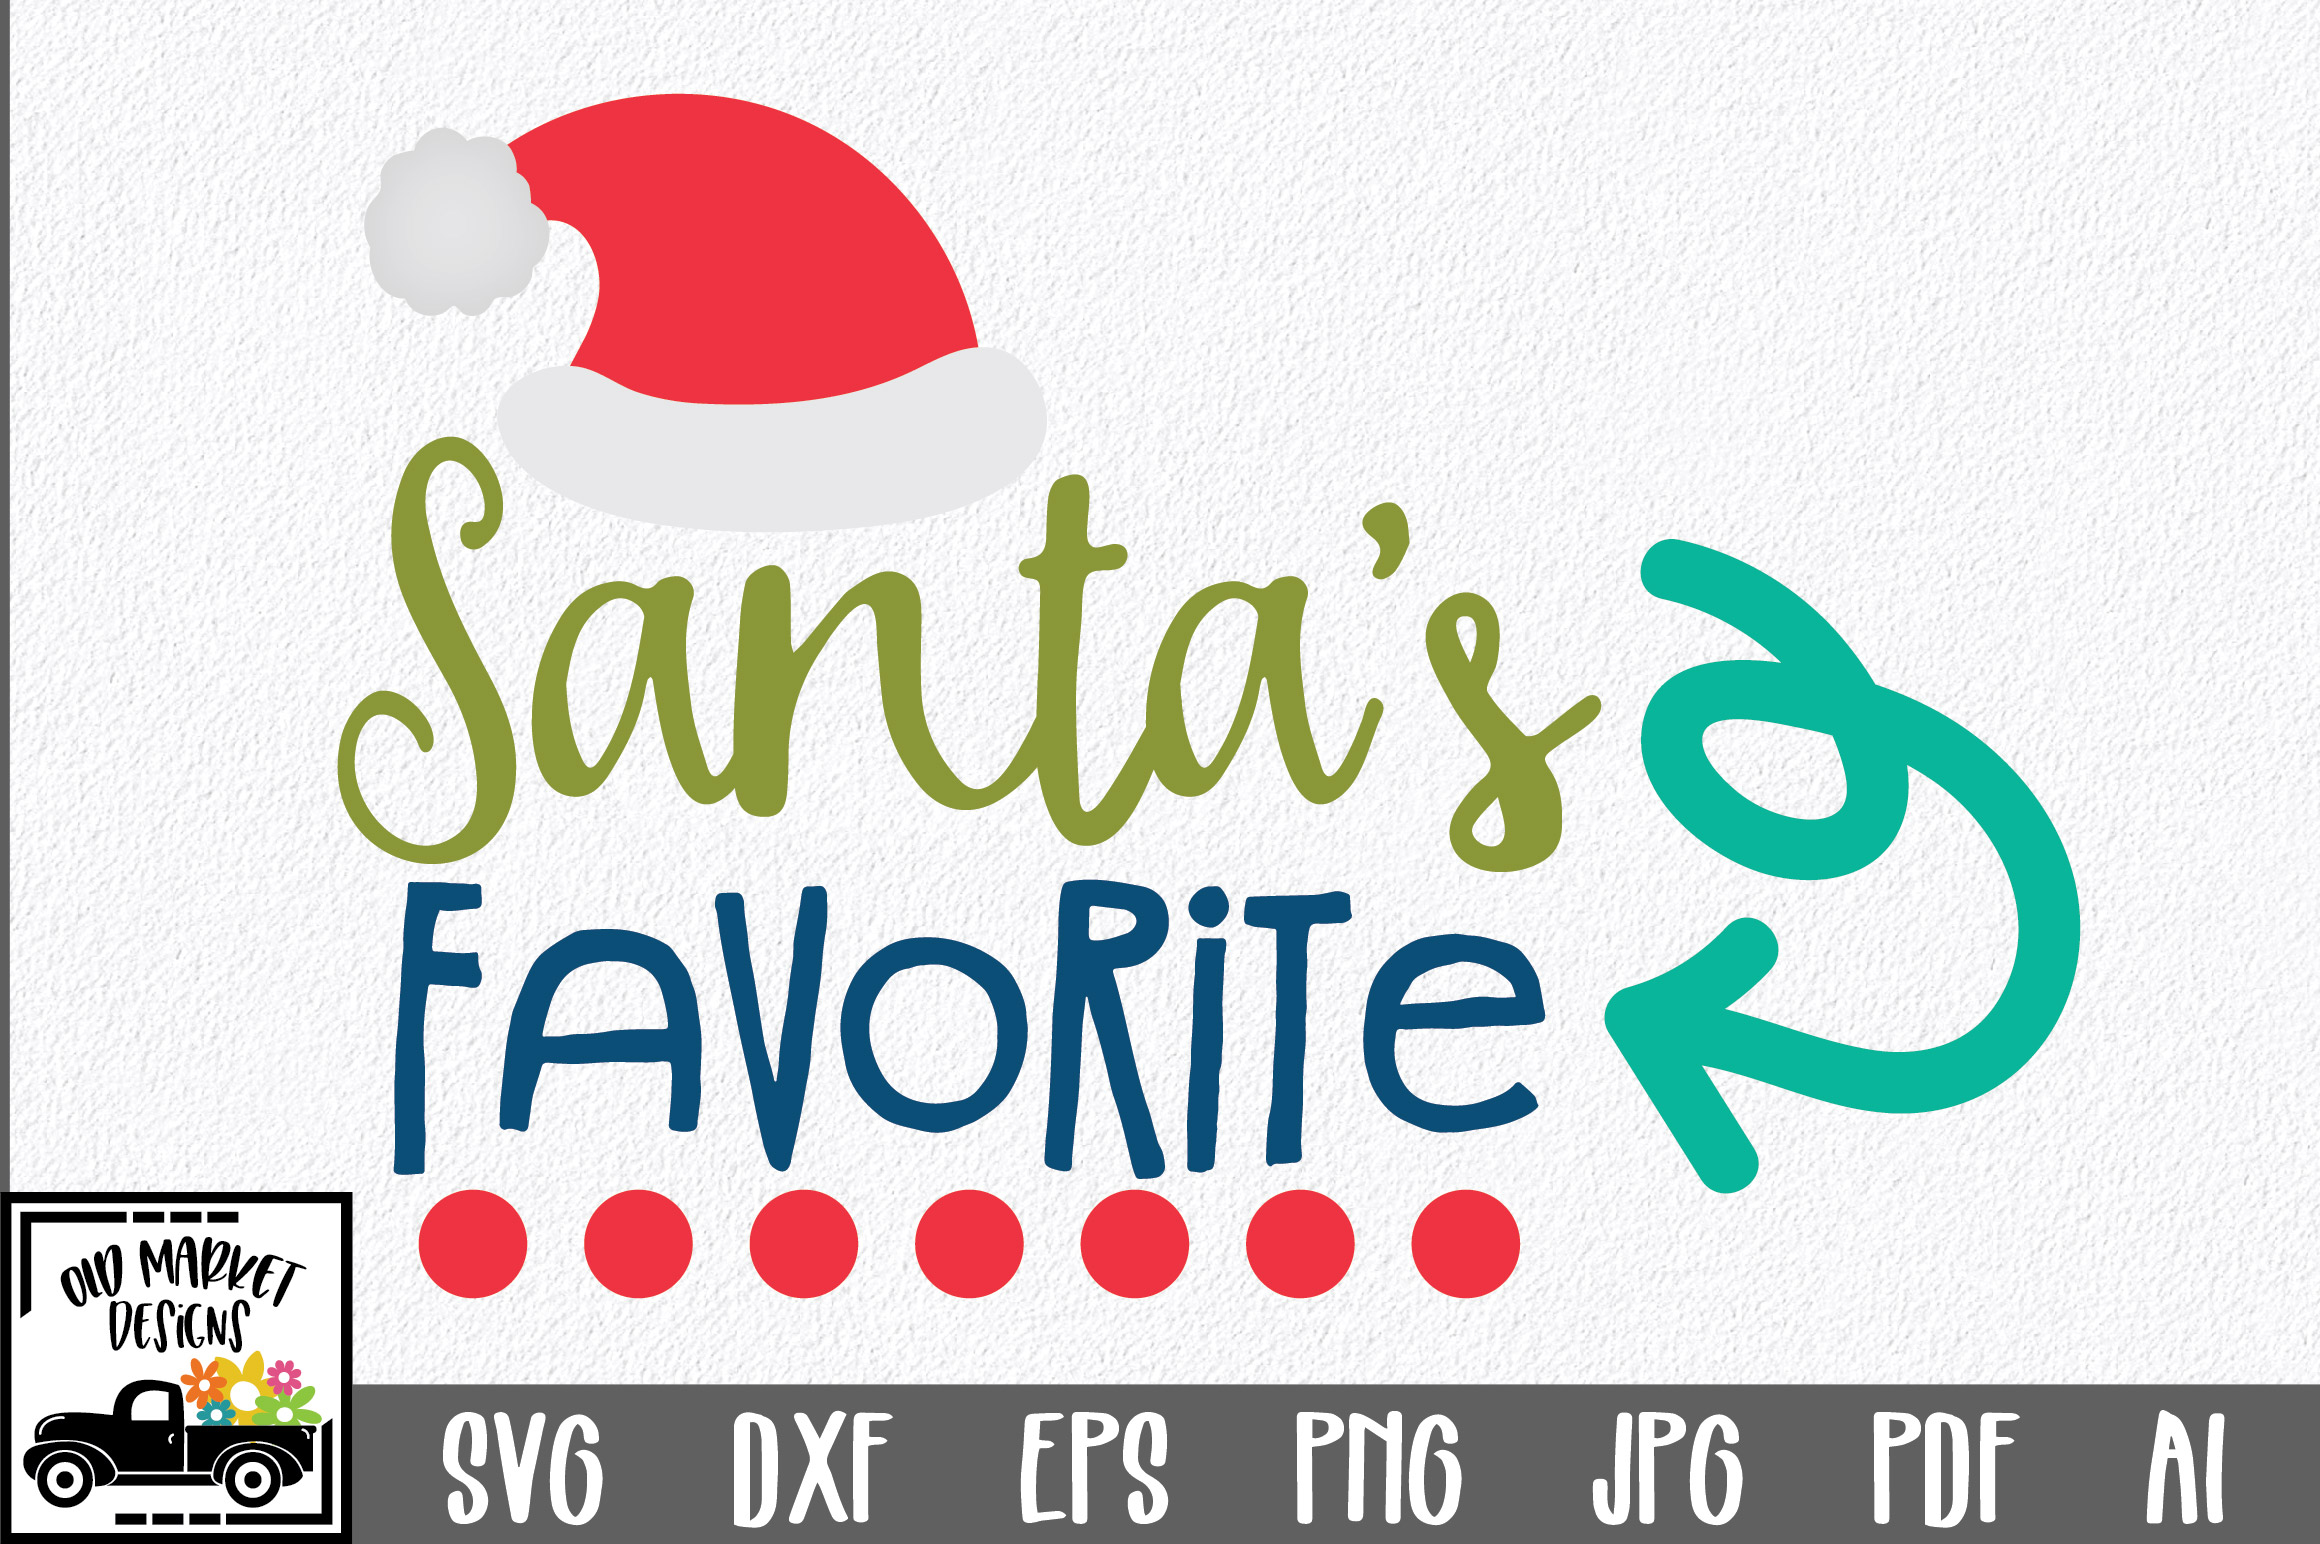 Download Free Christmas Santa S Favorite Graphic By Oldmarketdesigns for Cricut Explore, Silhouette and other cutting machines.